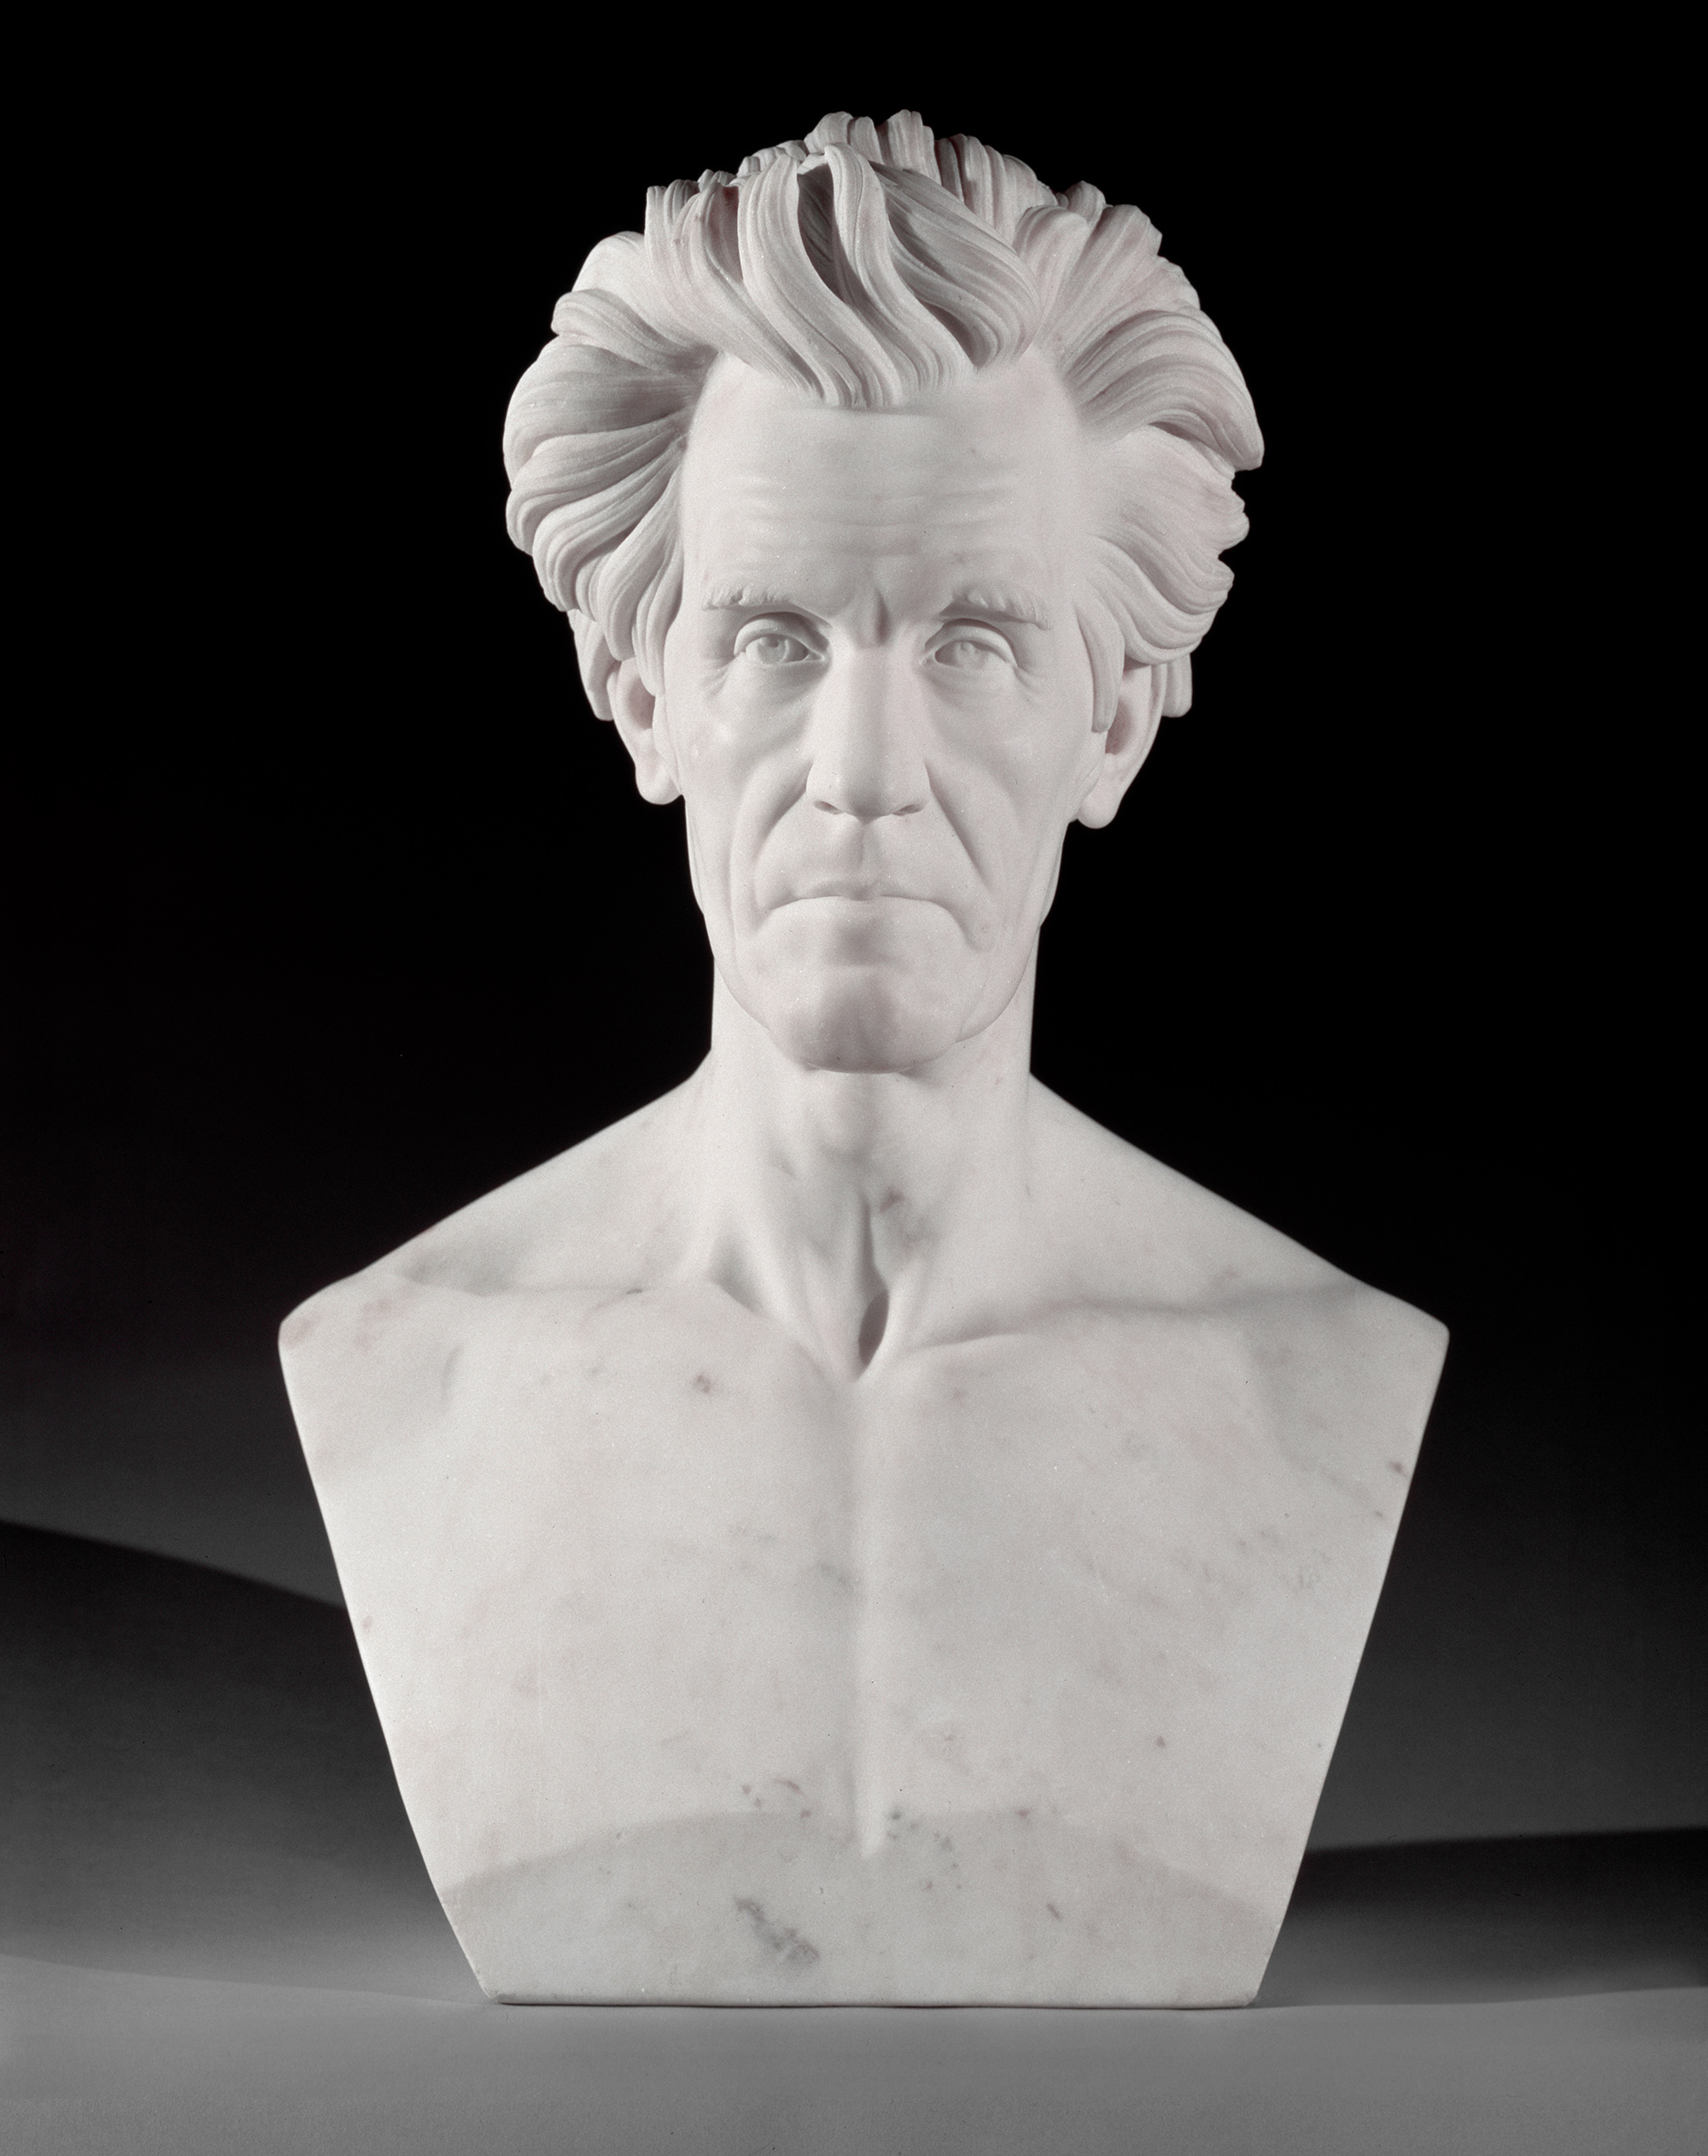 Plaster sculpture of a bare-chested man with full hair